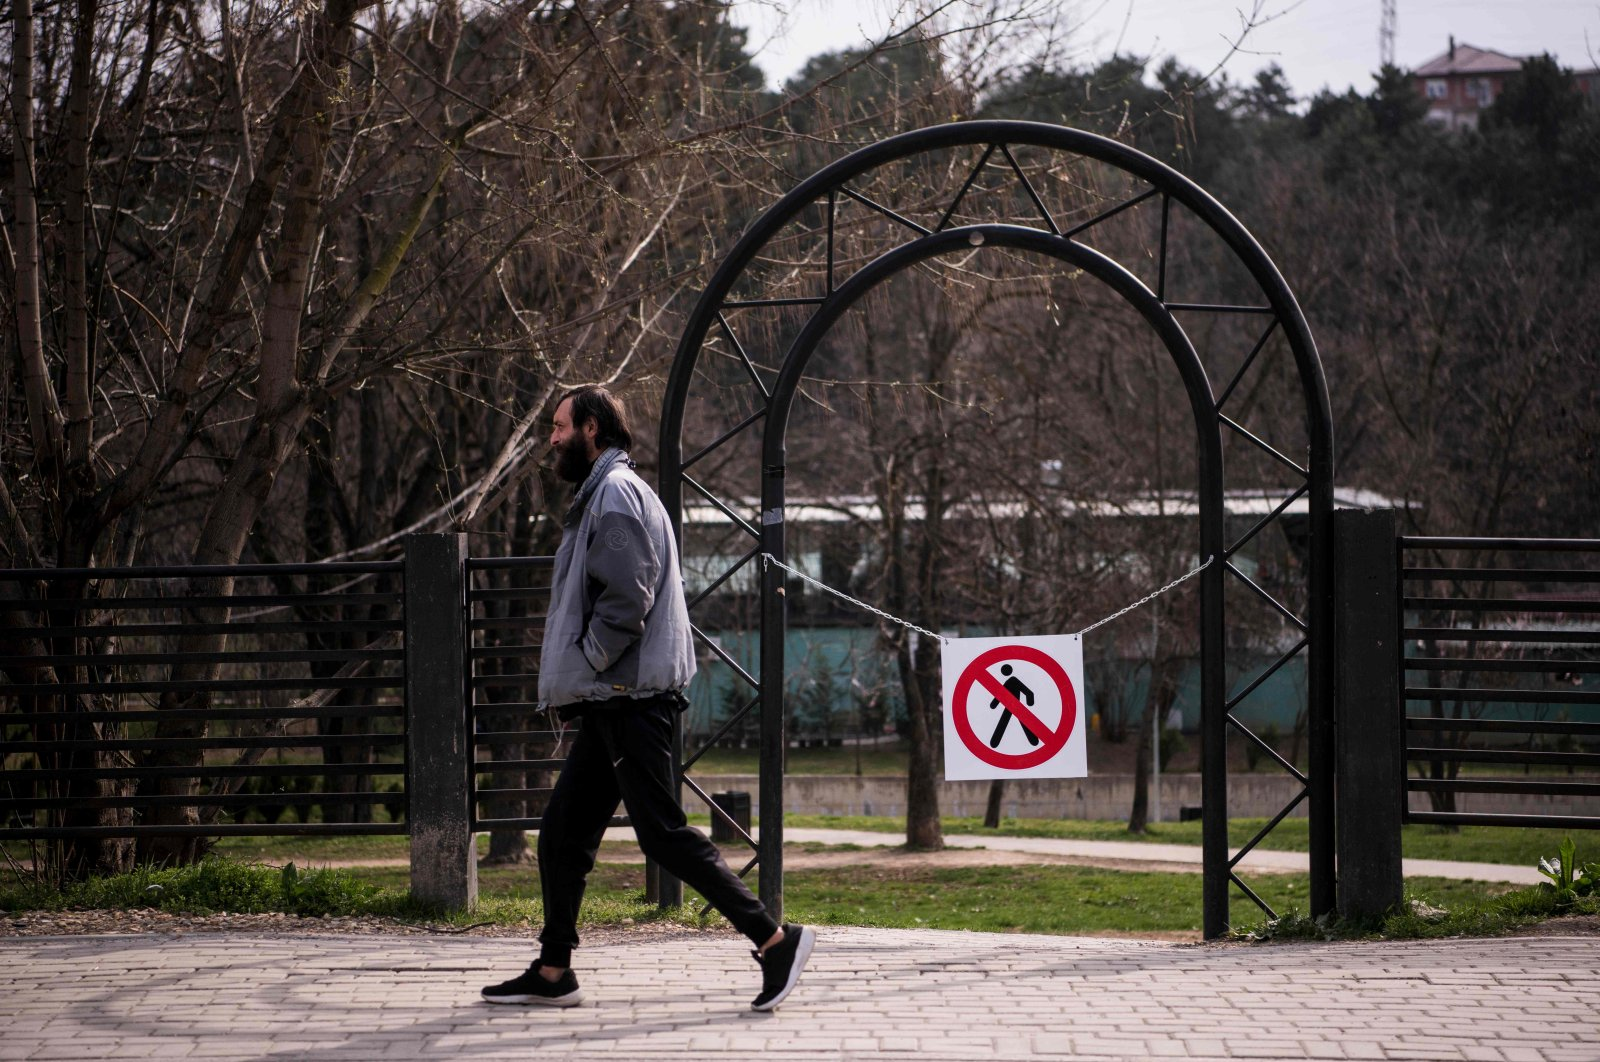 A man walks past a no-entry sign across a gate into a park, Pristina, March 22, 2020. (AFP Photo)